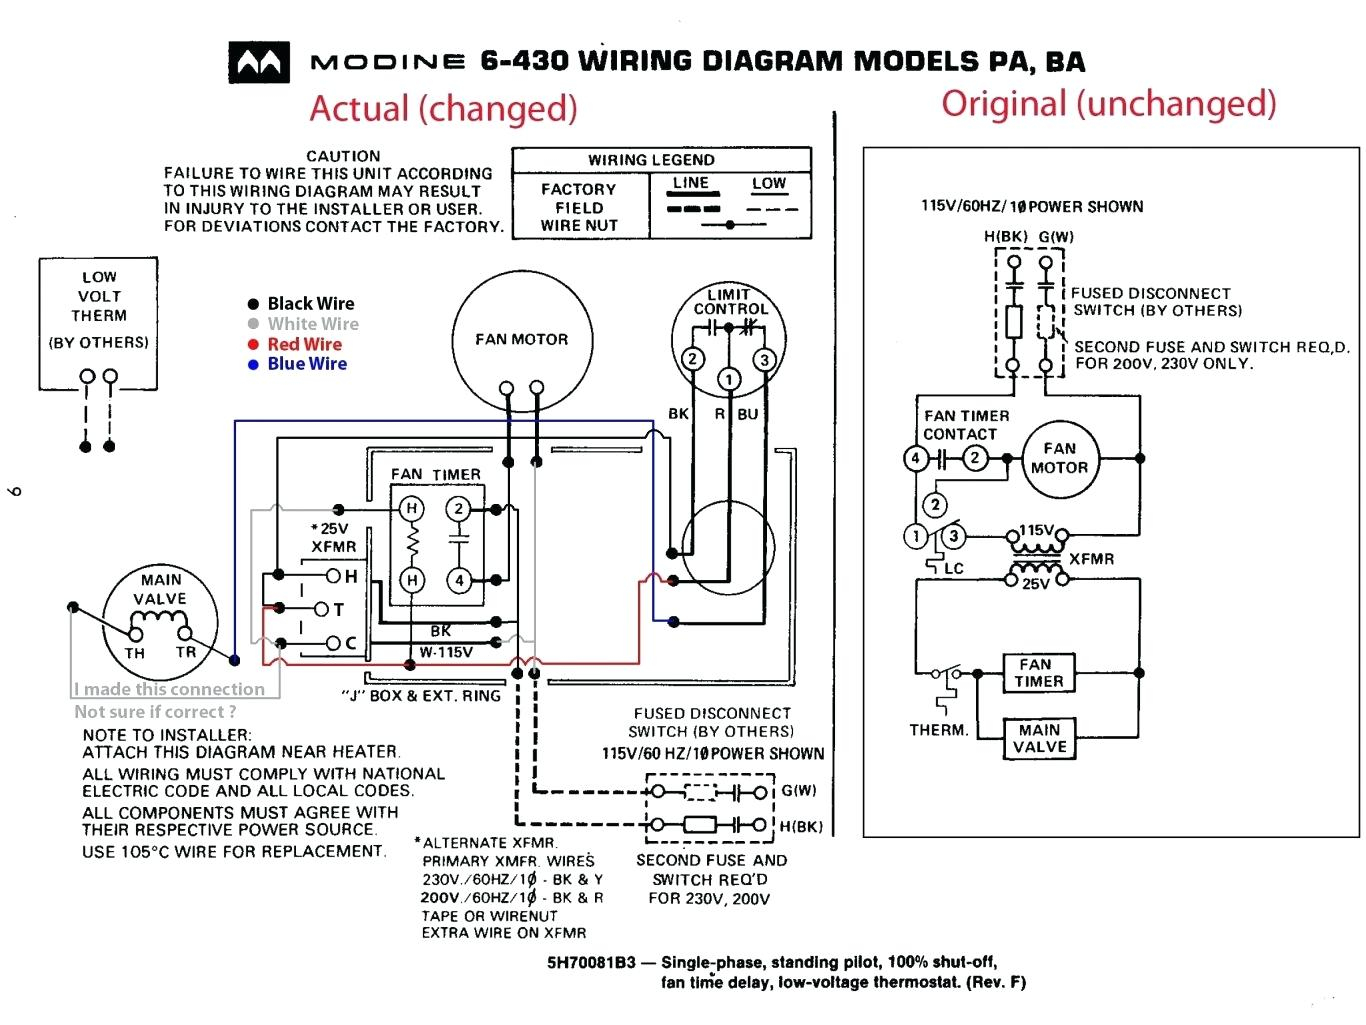 aube rc840t 240 wiring diagram Collection-Aube Rc840t 240 Wiring Diagram Inspirational Furnace thermostat Wiring Diagram Rv Shower Valves thermostatic 12-m